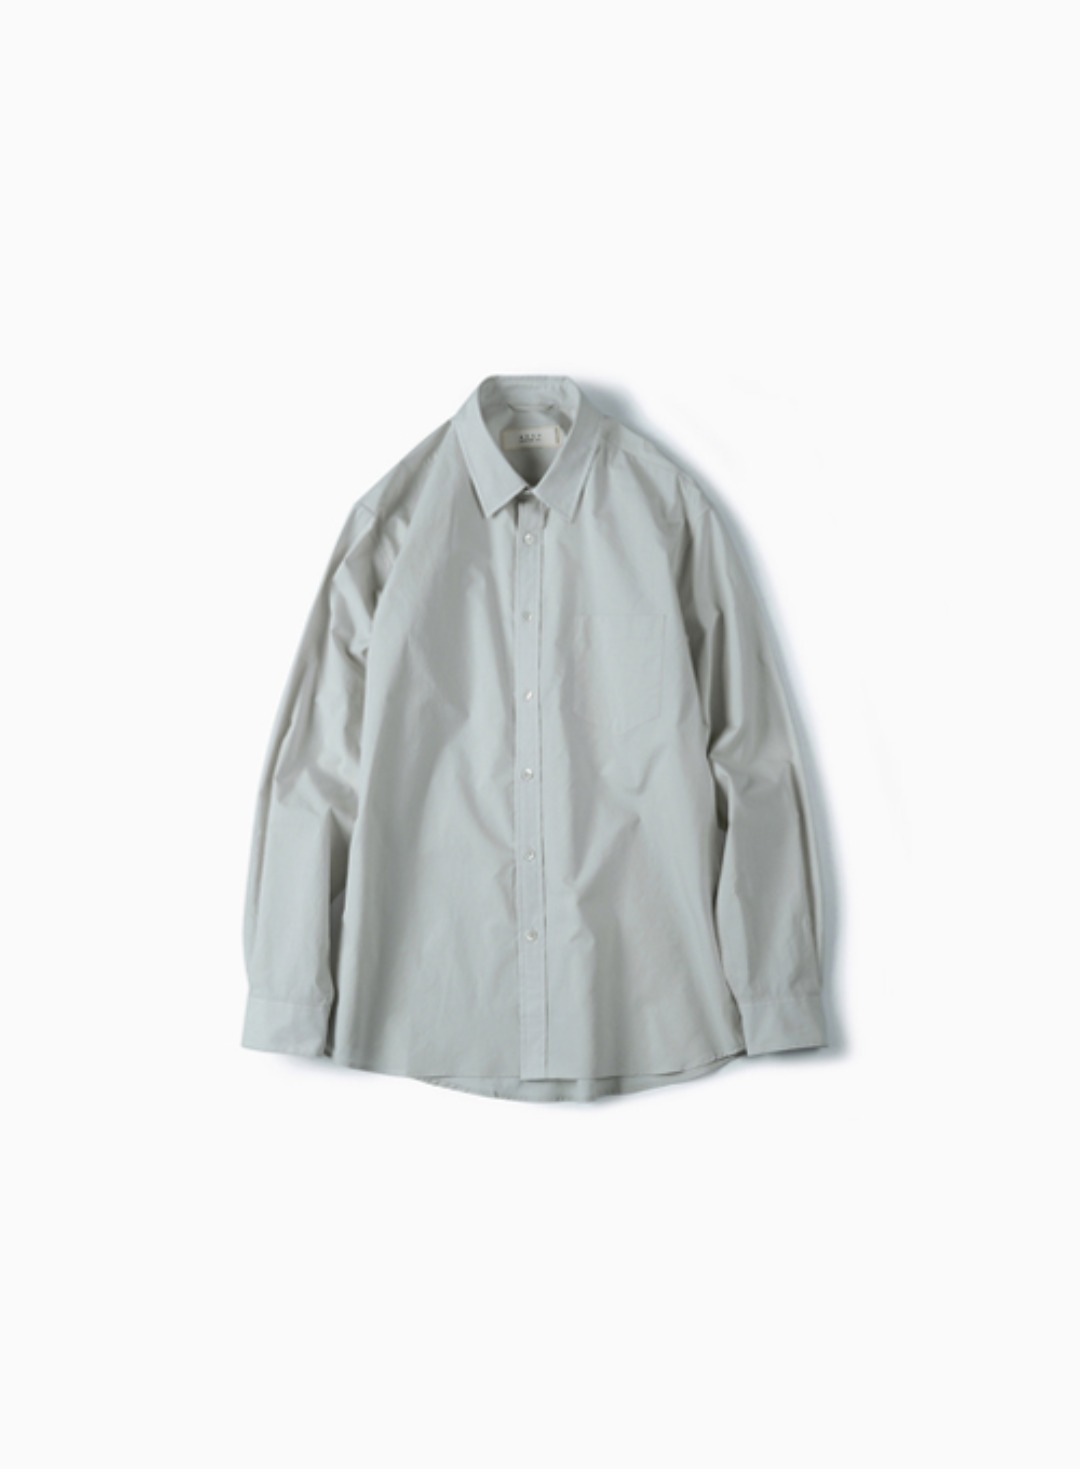 03 STANDARD SHIRT (LIGHT GREY)